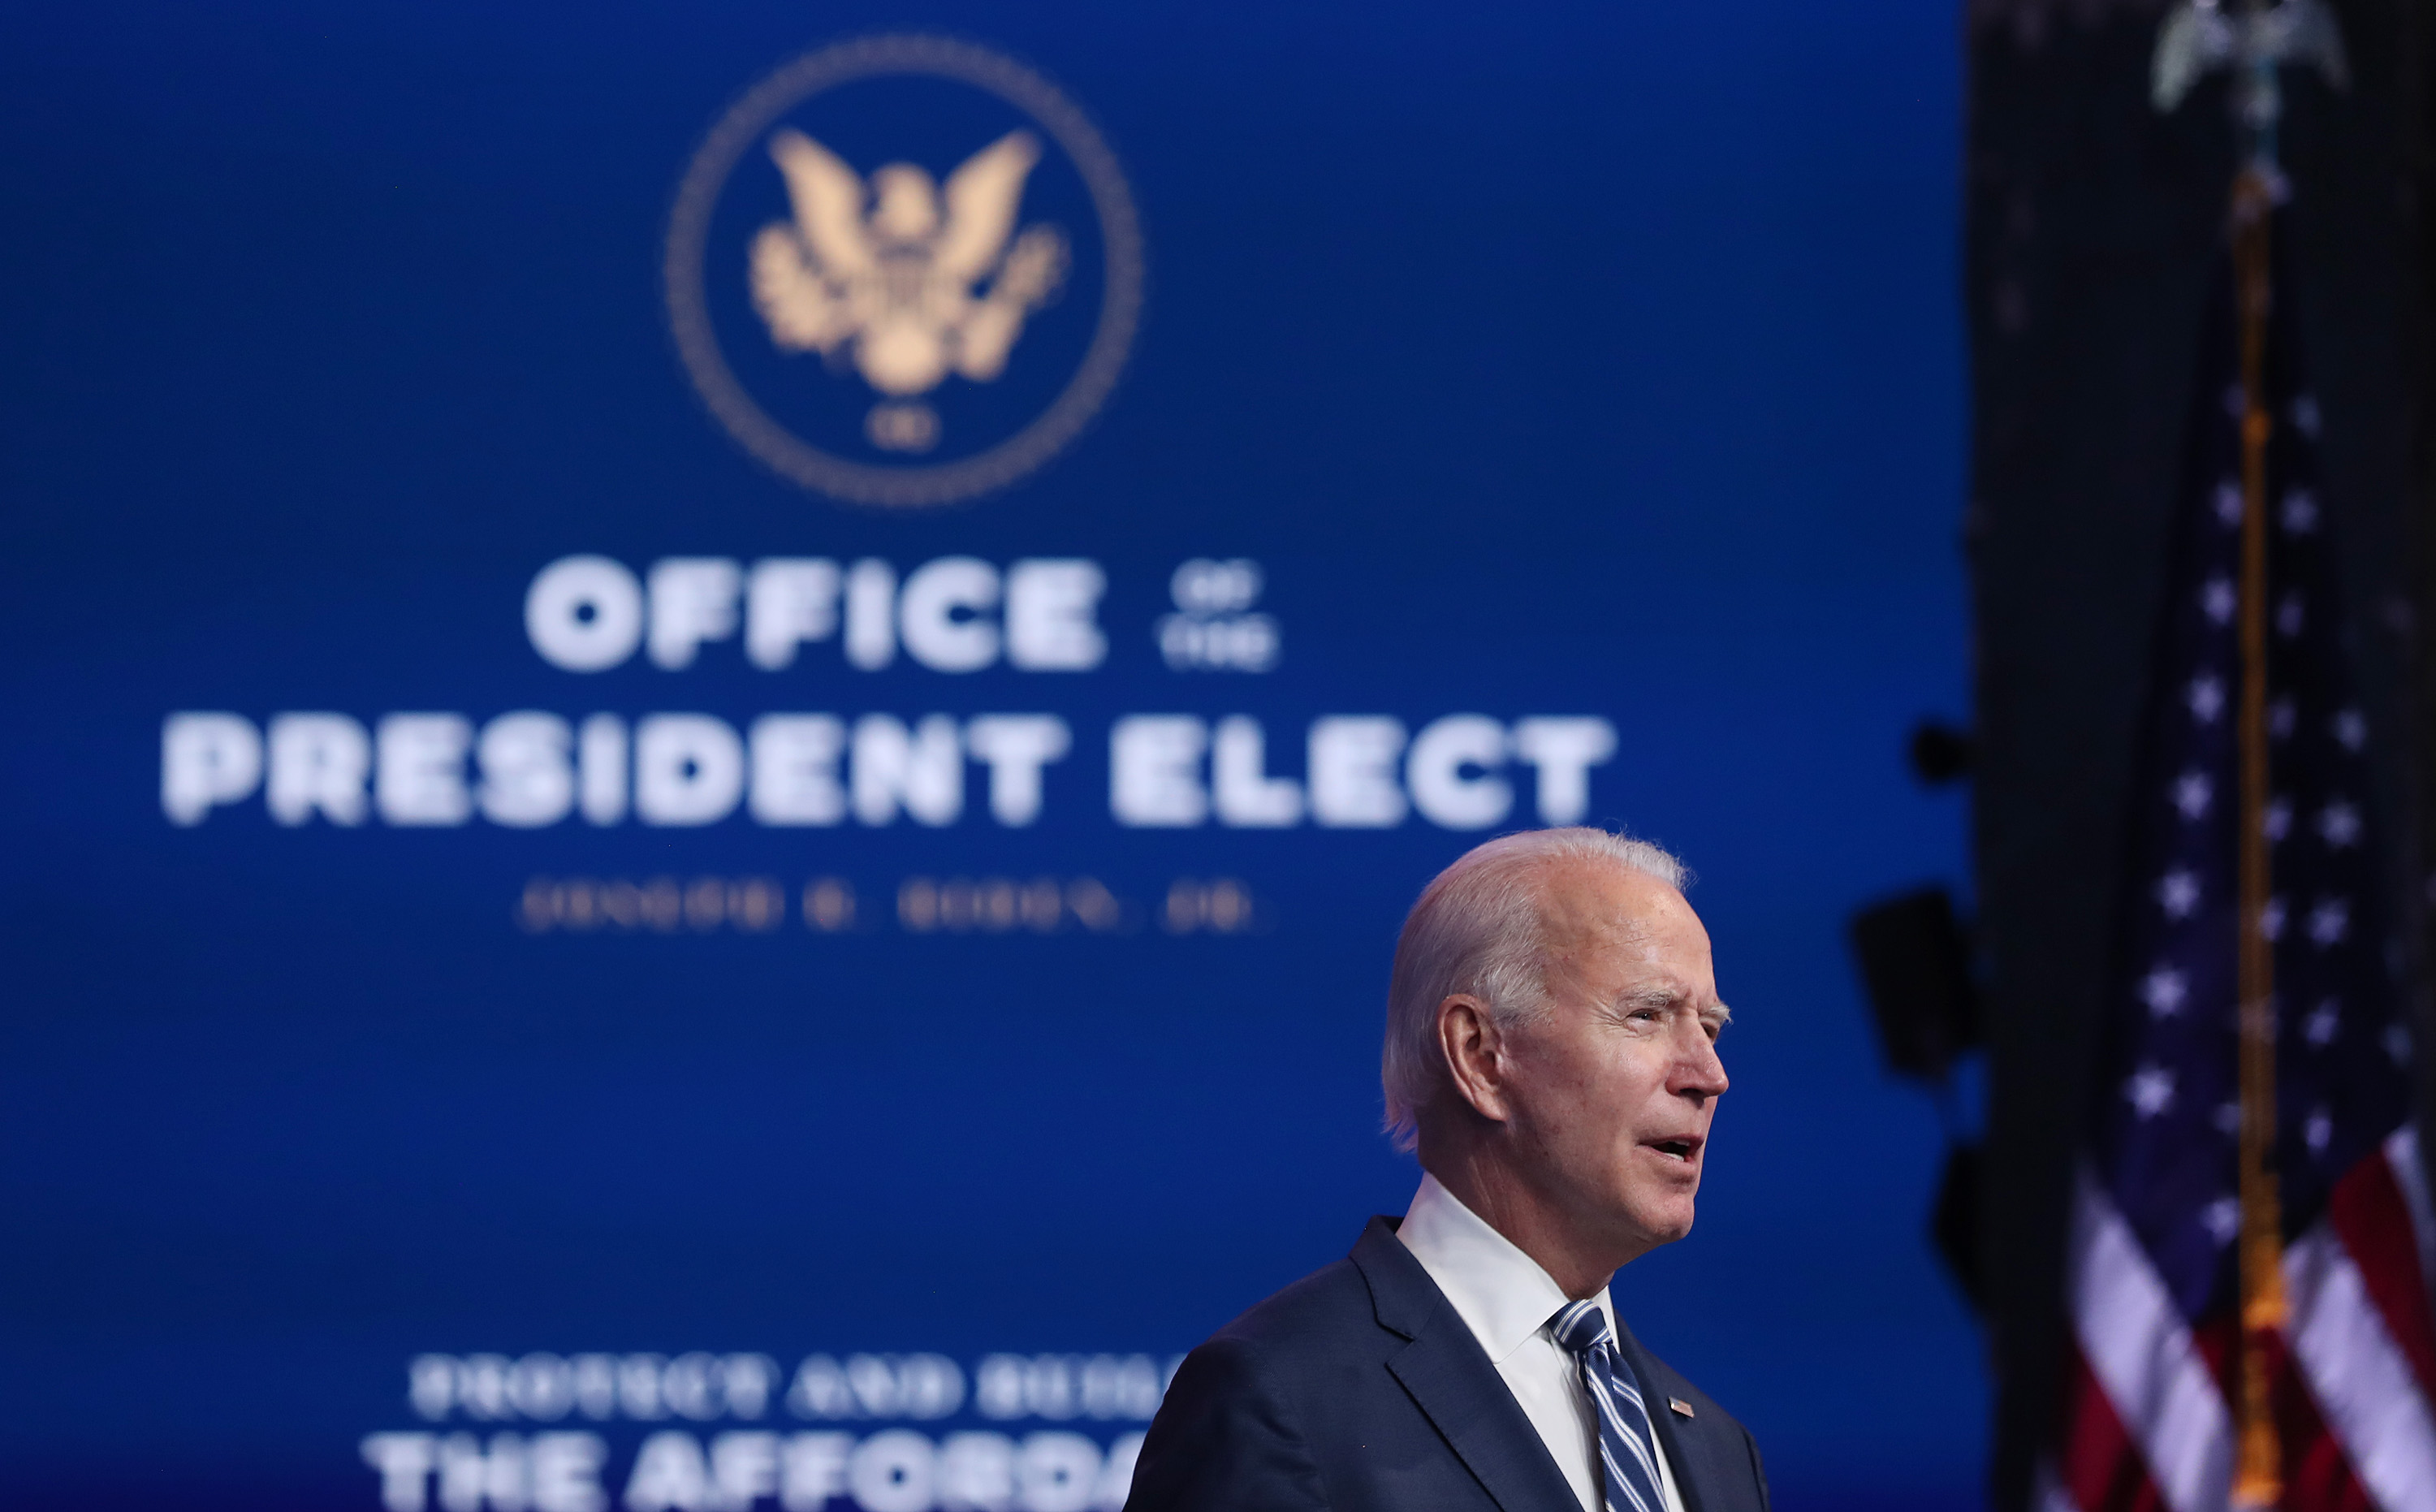 """Joe Biden speaks at a podium in front of a backdrop reading, """"Office of the President-elect"""""""